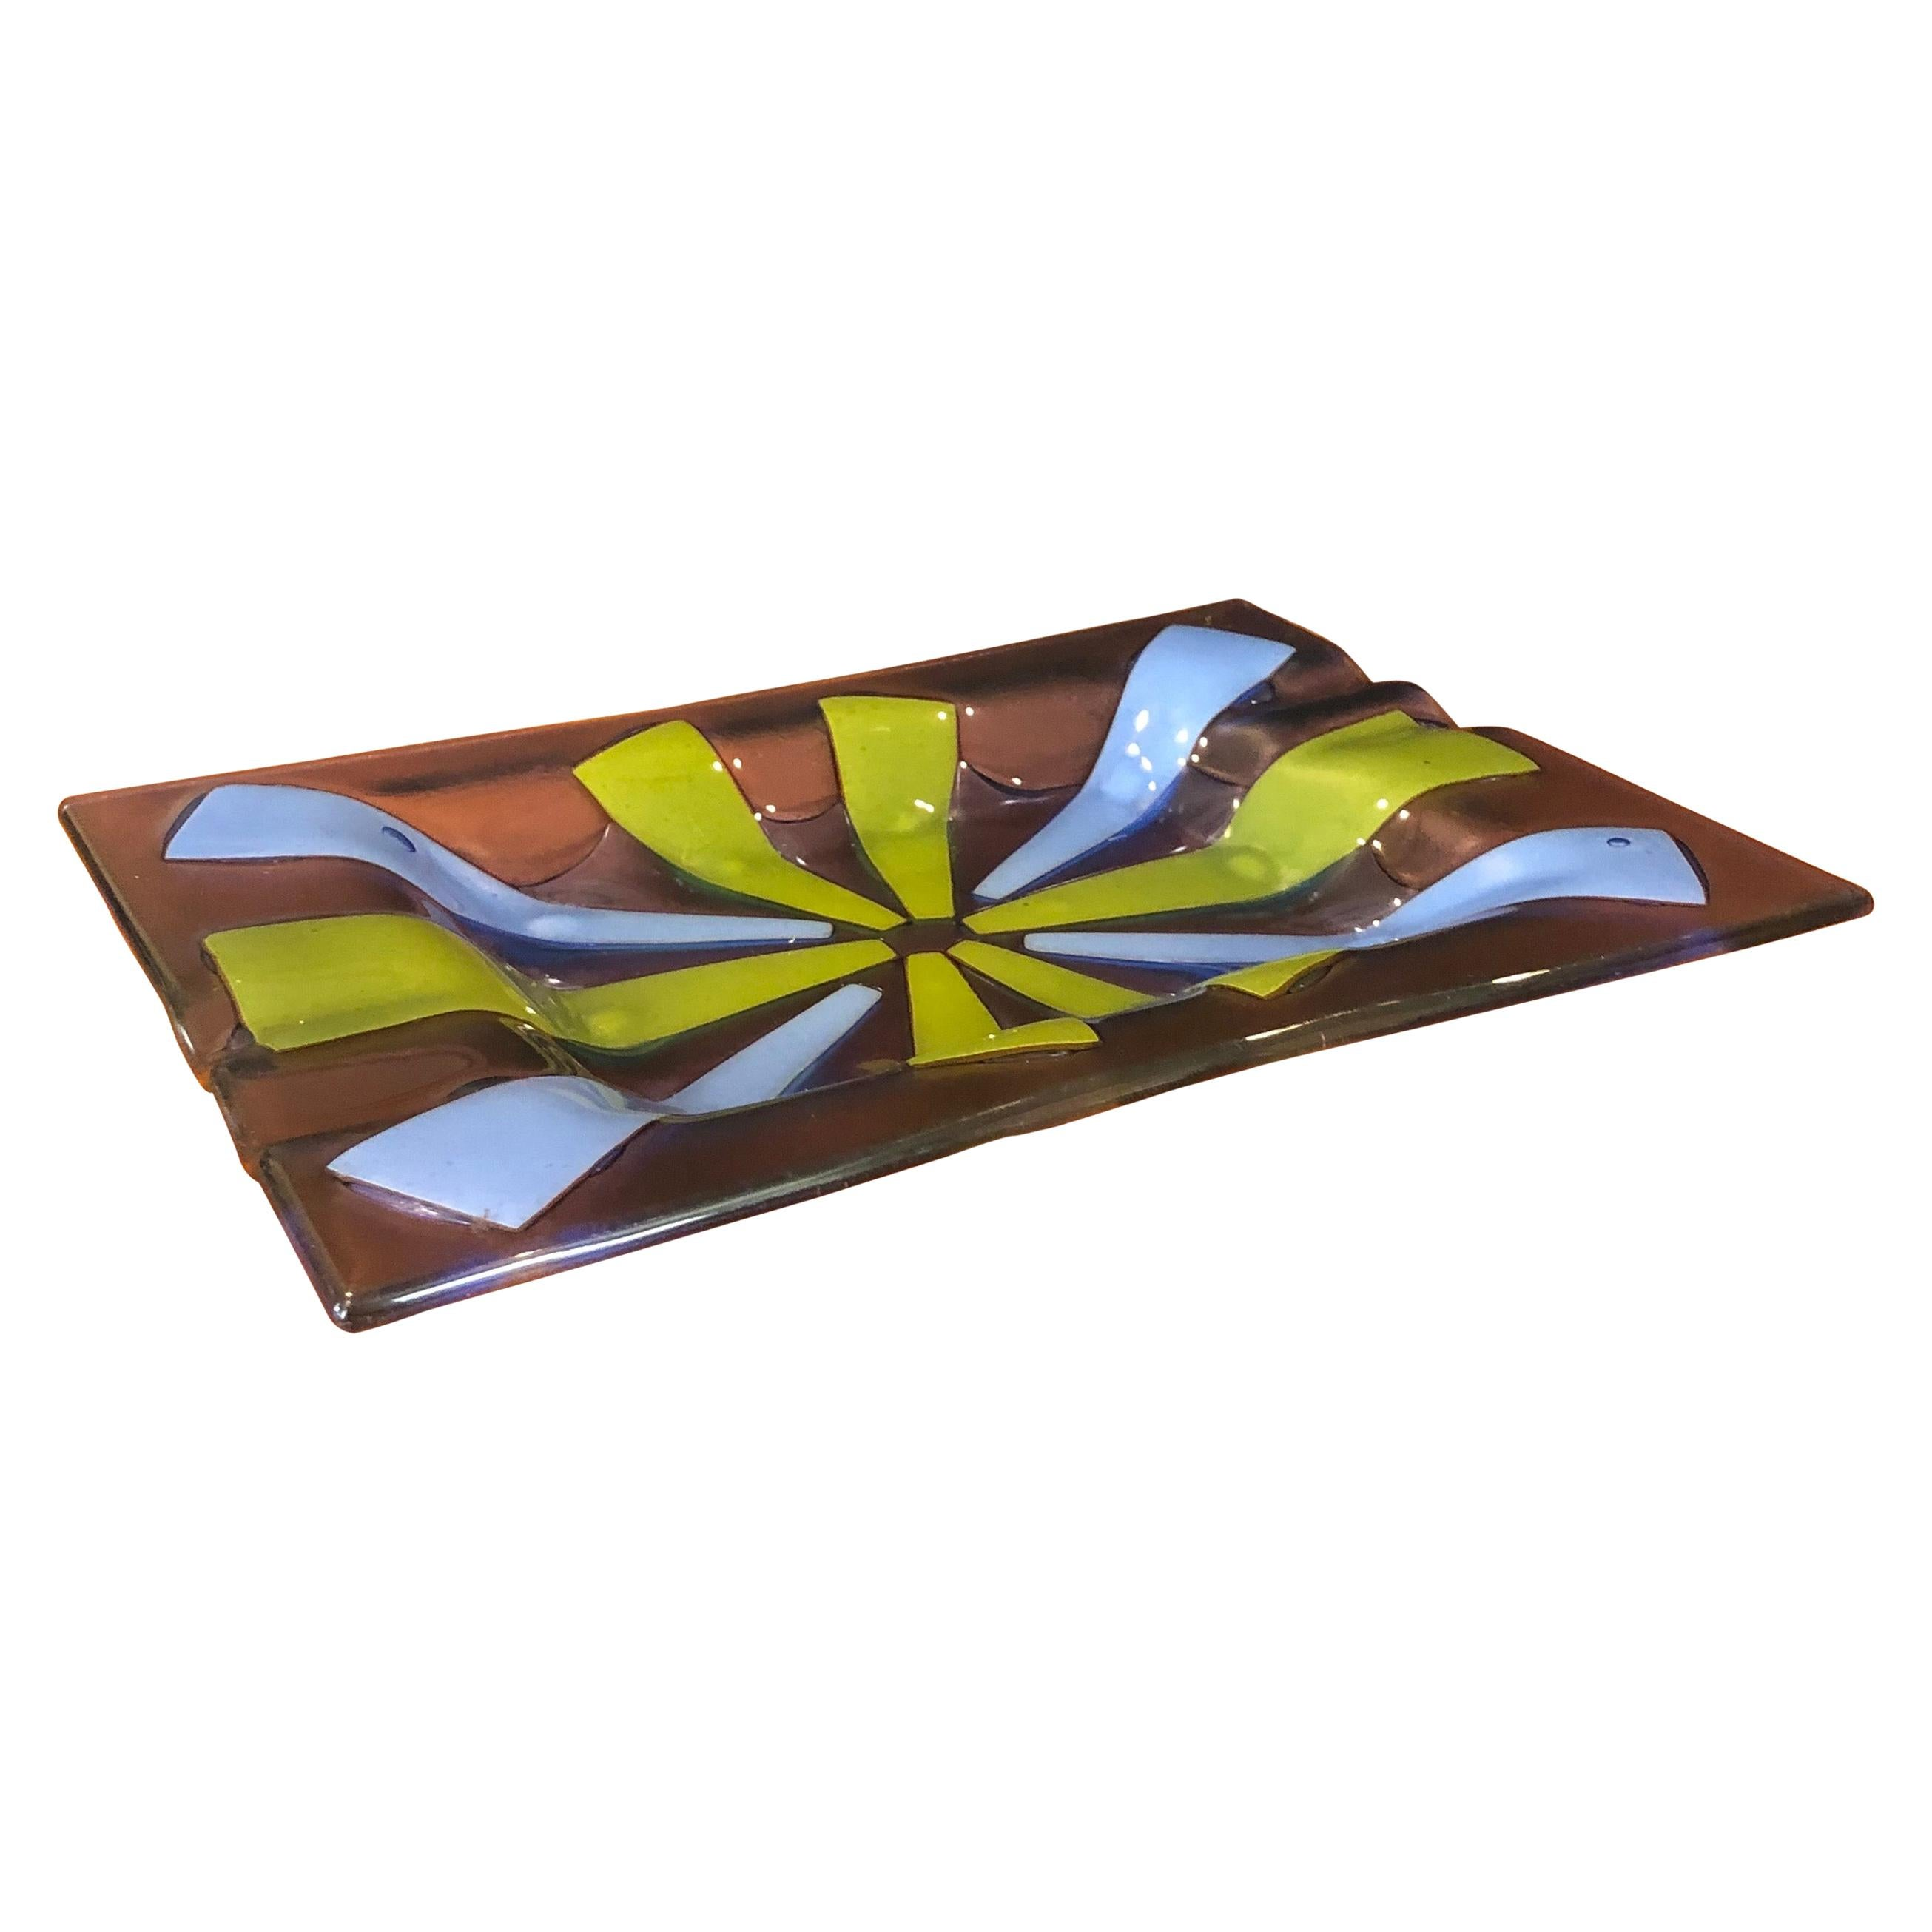 Midcentury Fused Art Glass Ashtray by Higgins